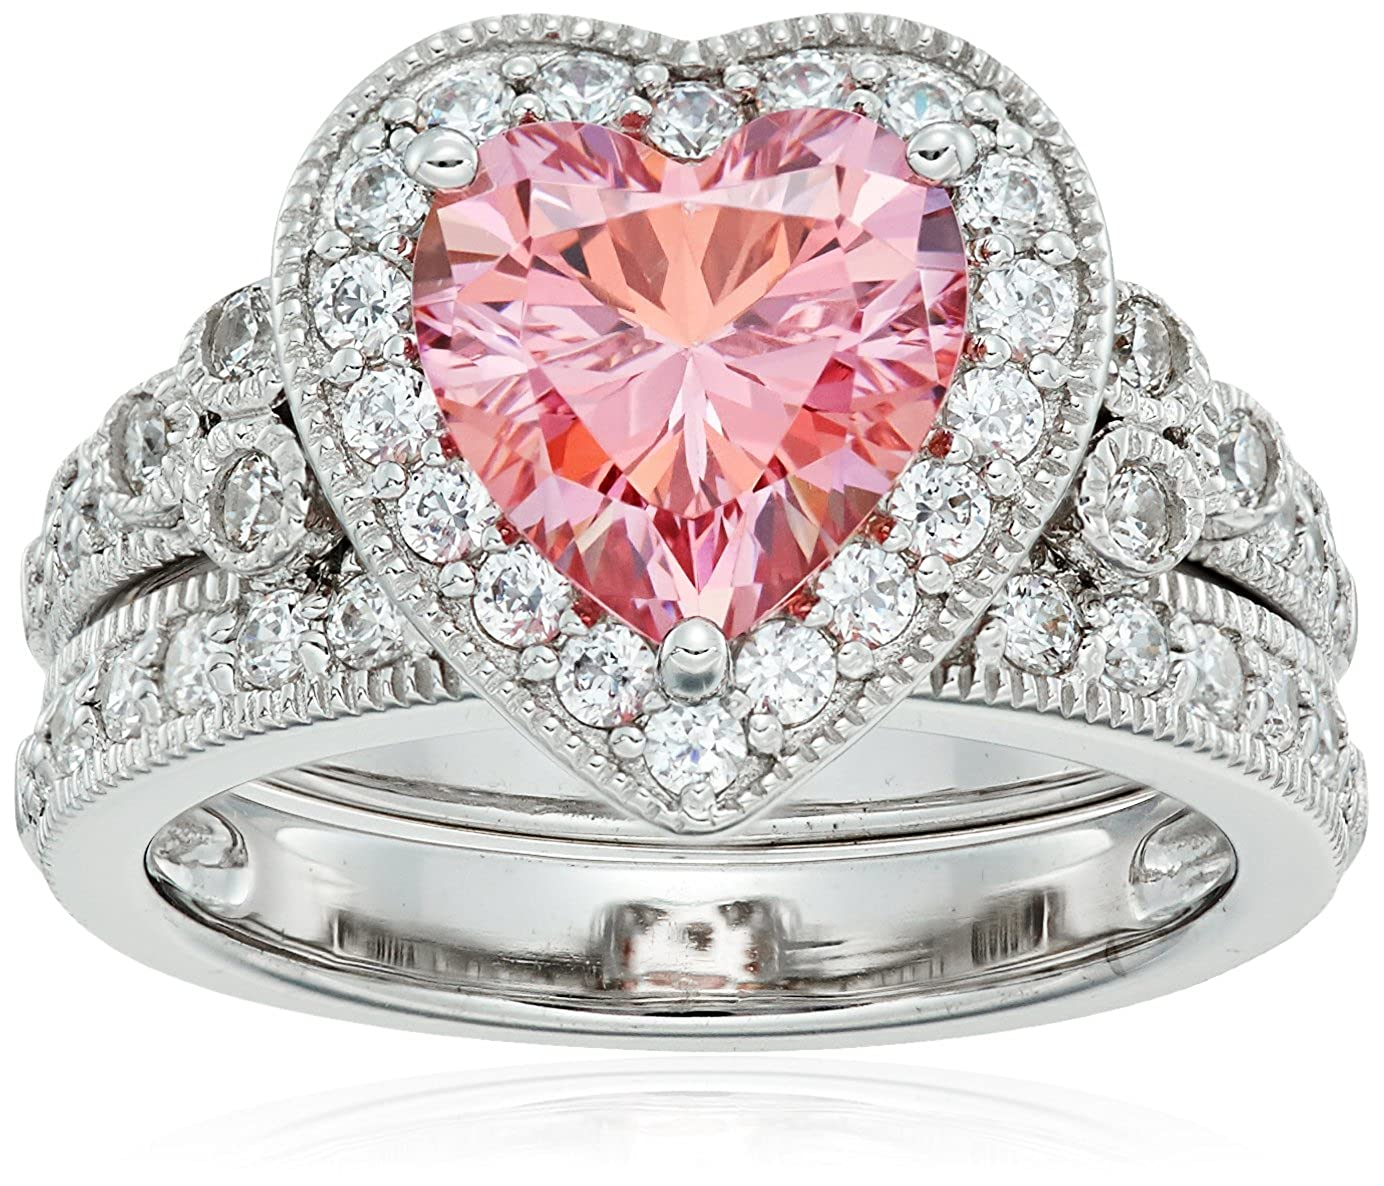 Platinum-Plated Sterling Silver Swarovski Zirconia Fancy Pink Heart Antique Ring, Size 5 Amazon Collection R3229202_120_Pink5